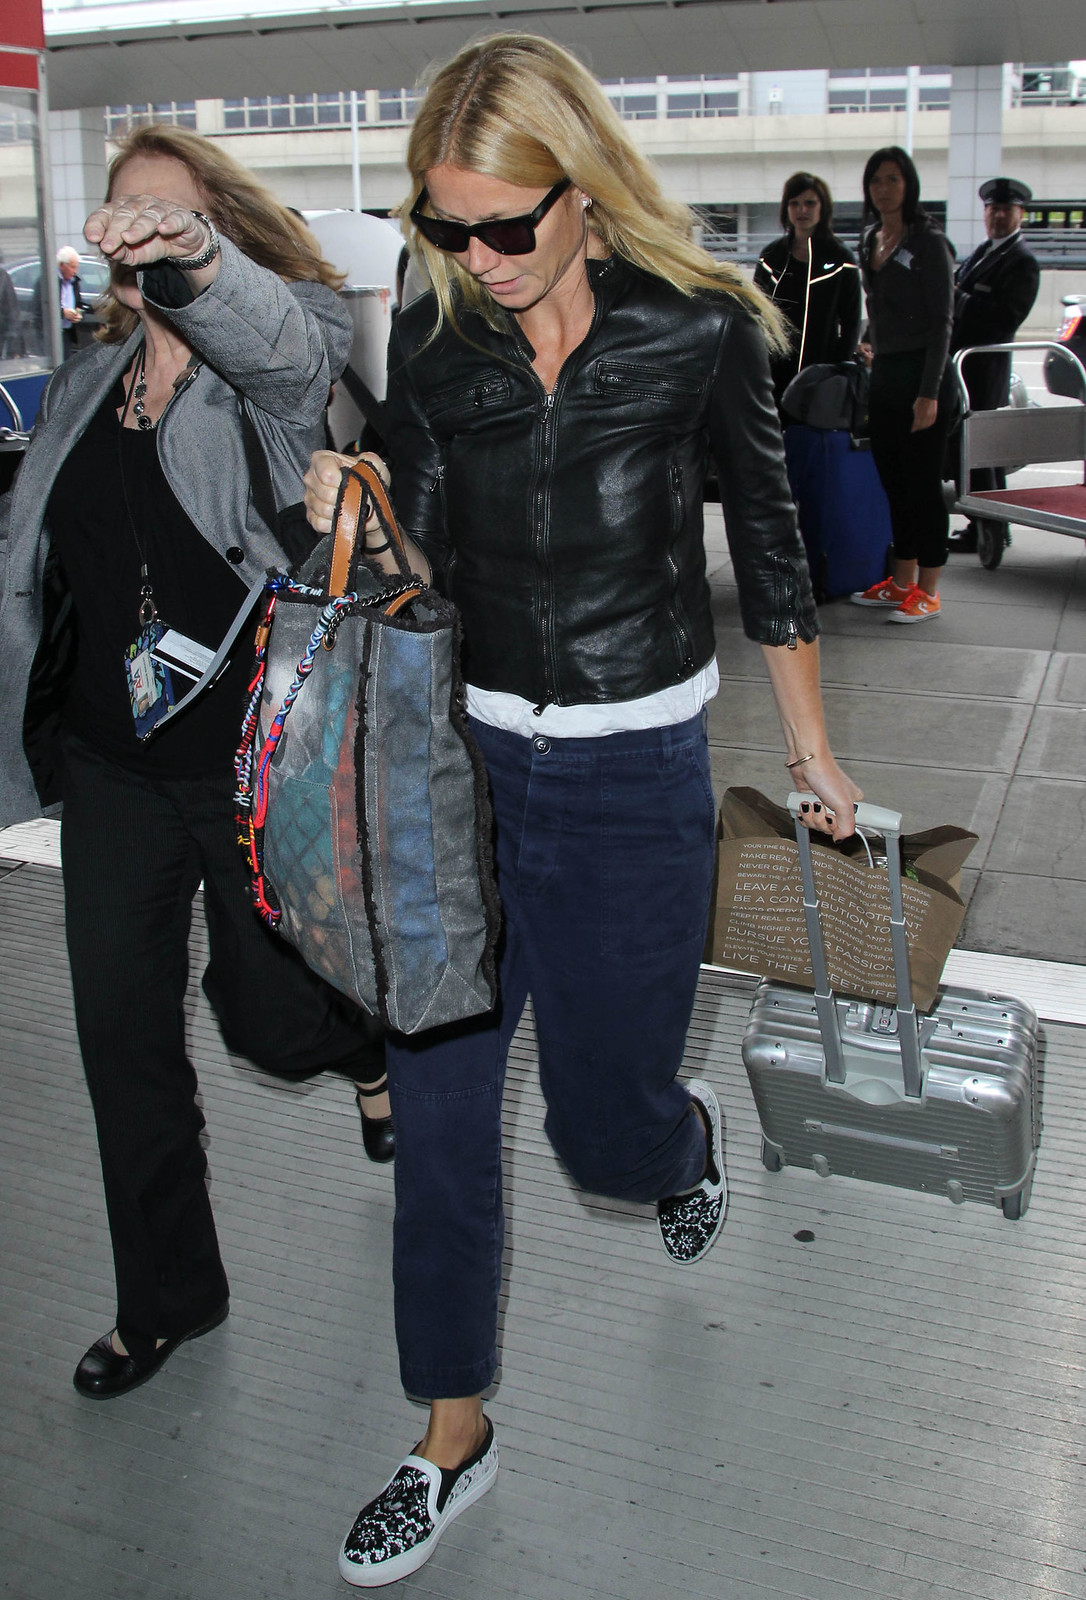 fdaa949d5222 Gwyneth Paltrow — Departing on a flight at LAX carrying the Chanel ...